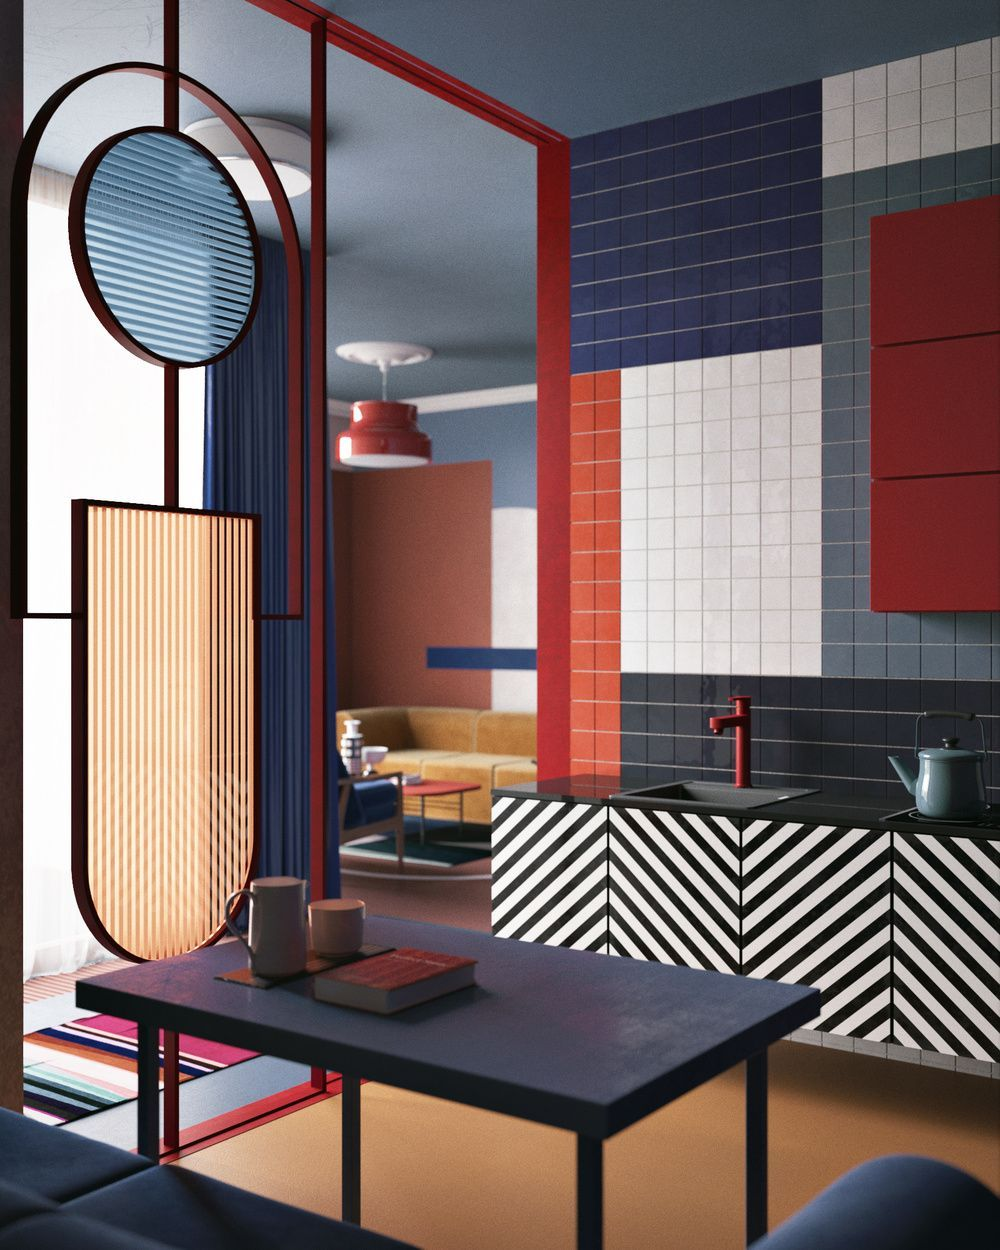 Interior Design Furniture: Color Block A New Design Trend For Your Home